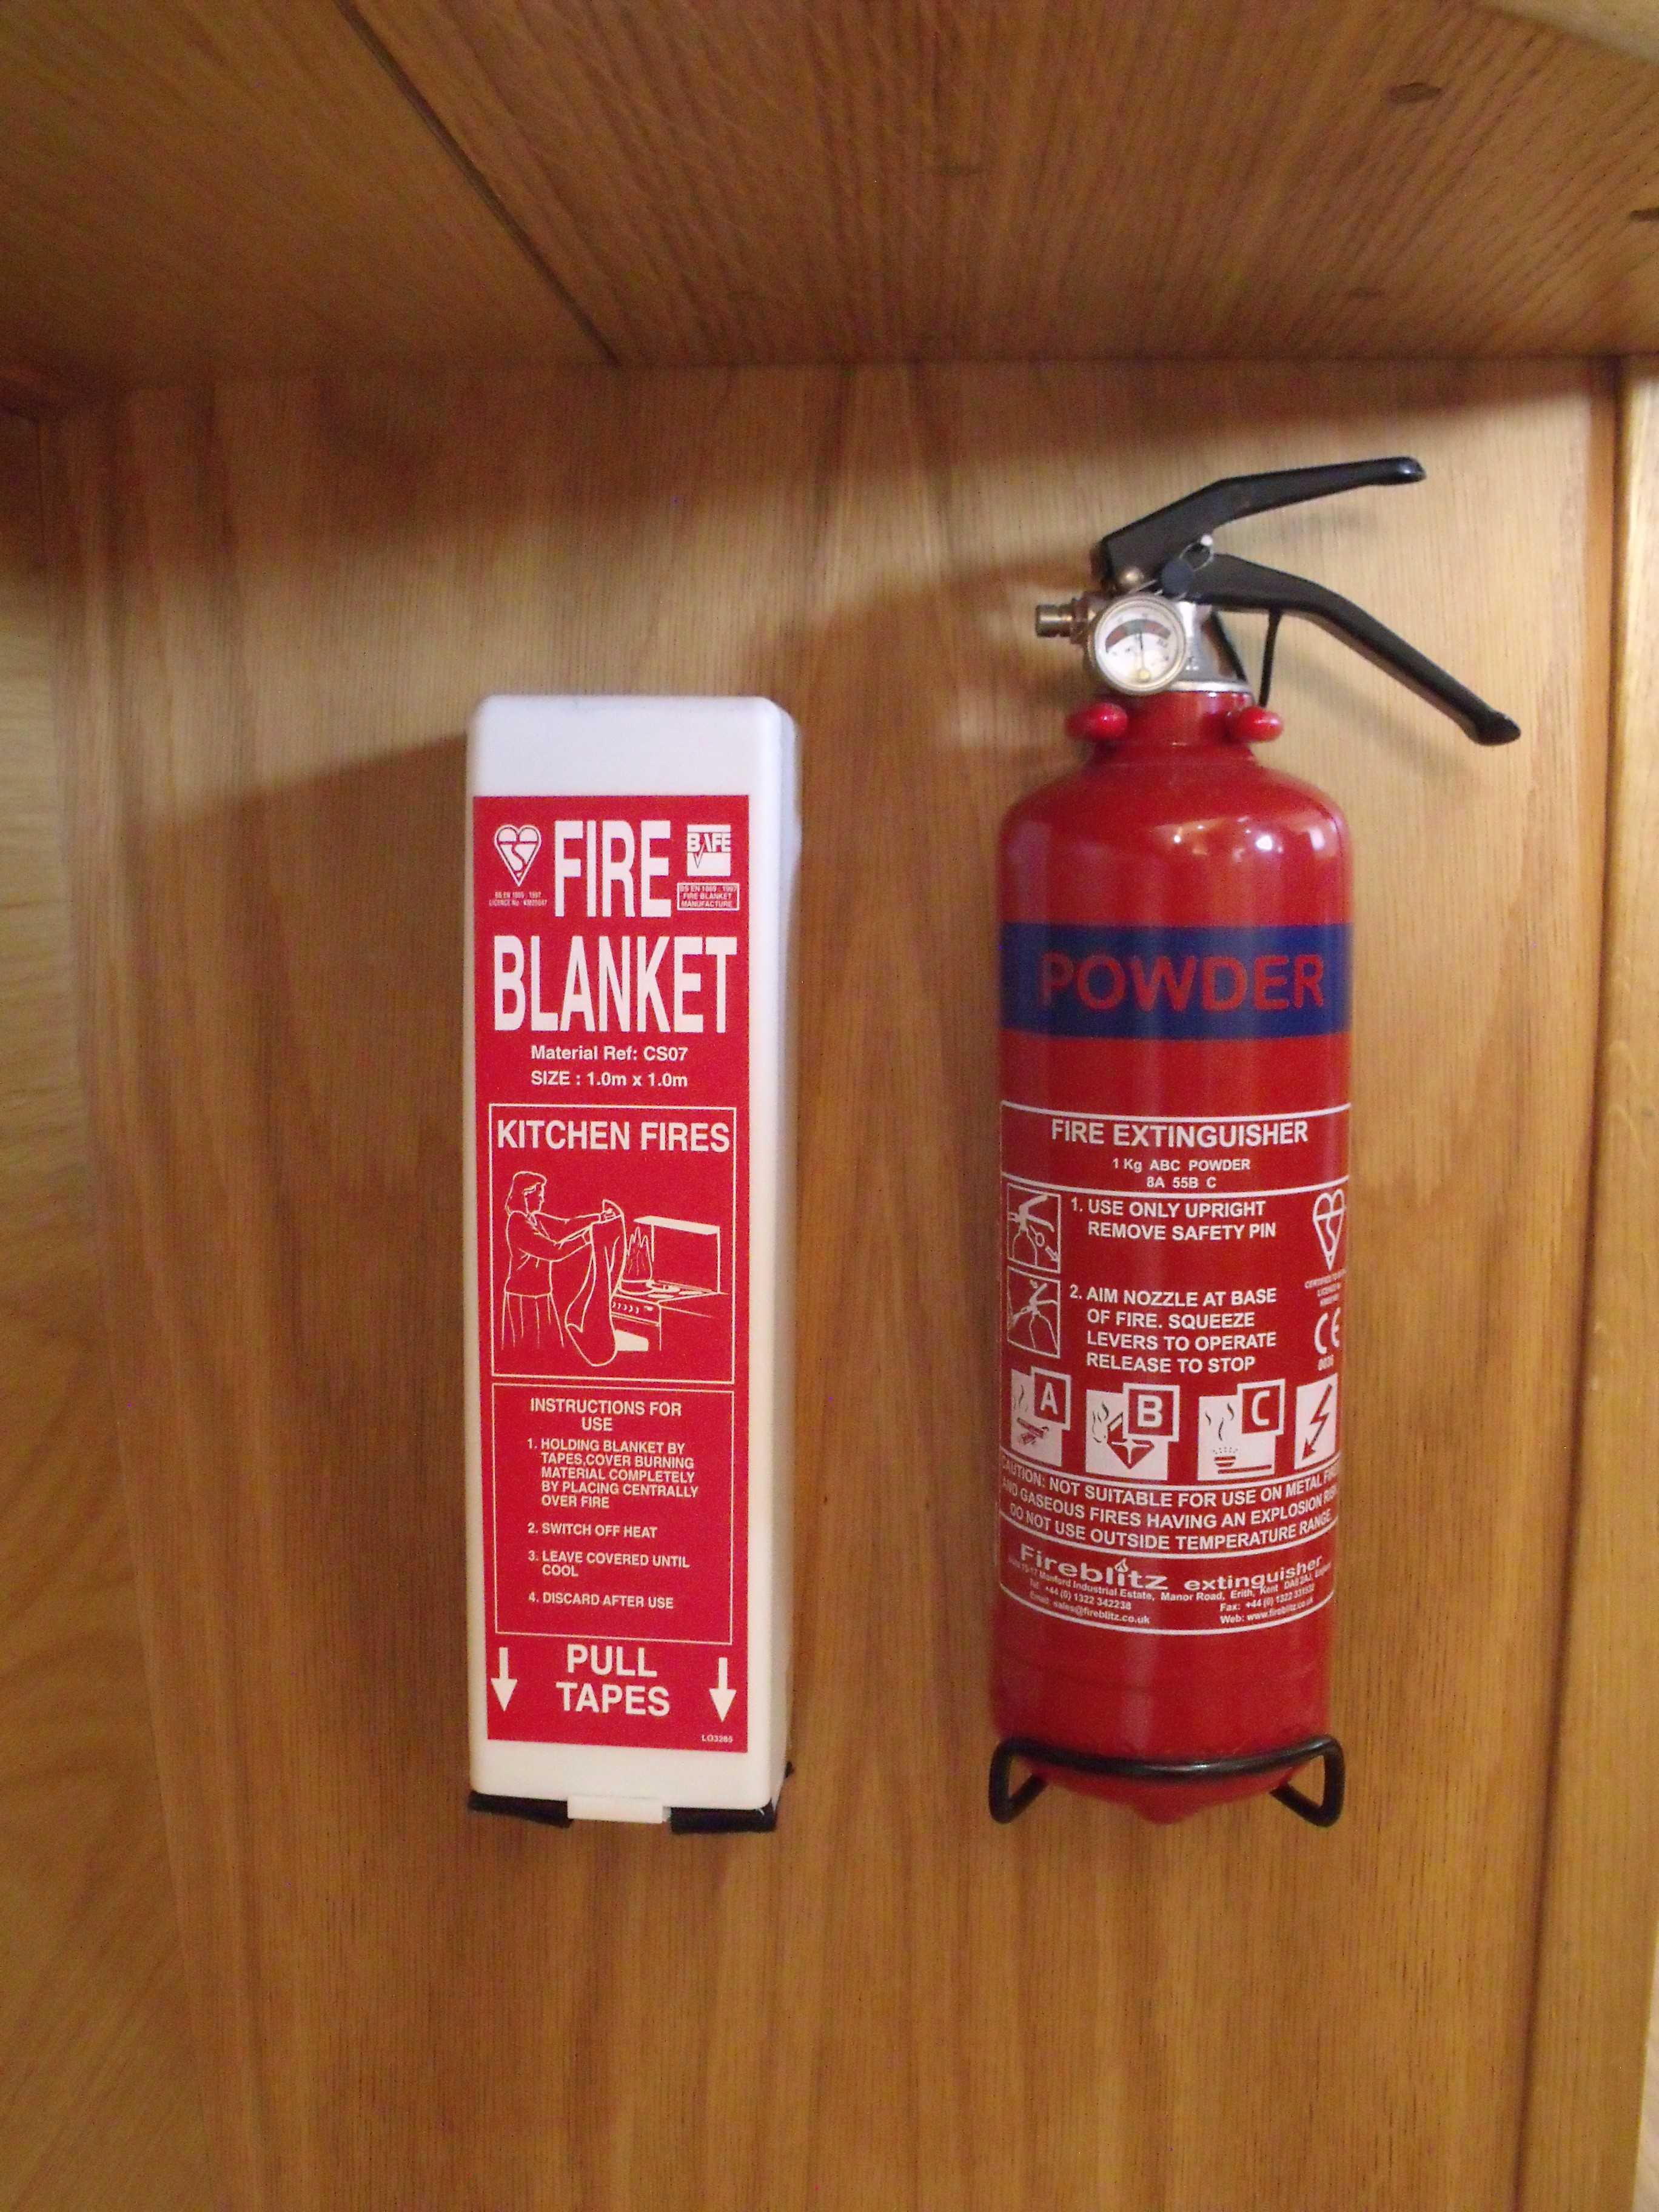 A fire blanket is required on a narrowboat with cooking facilities